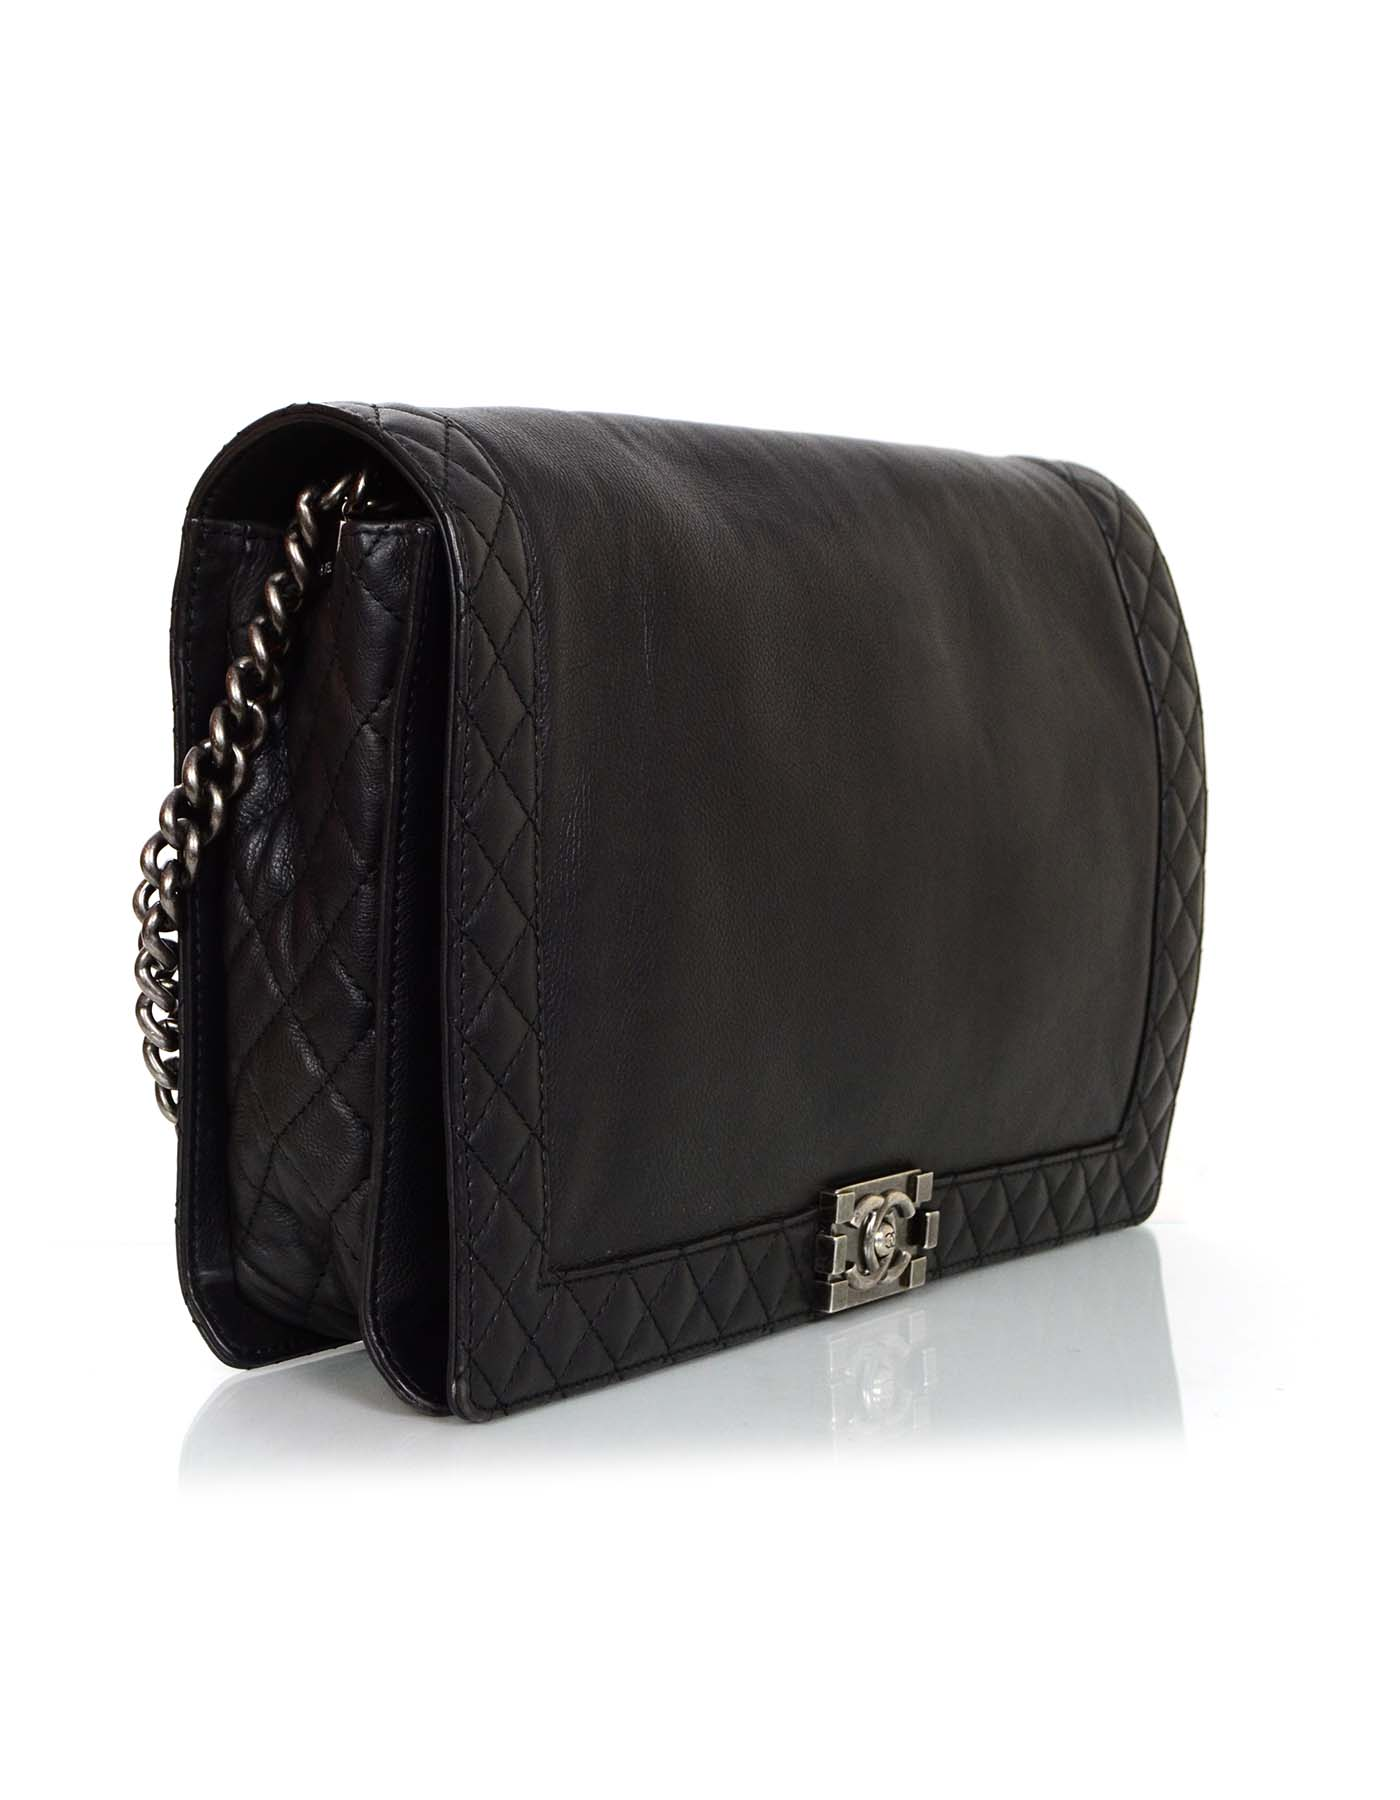 5c67b1406b4a Chanel Black Calfskin Leather Large Boy Reverso Bag rt. $5,300 For Sale at  1stdibs